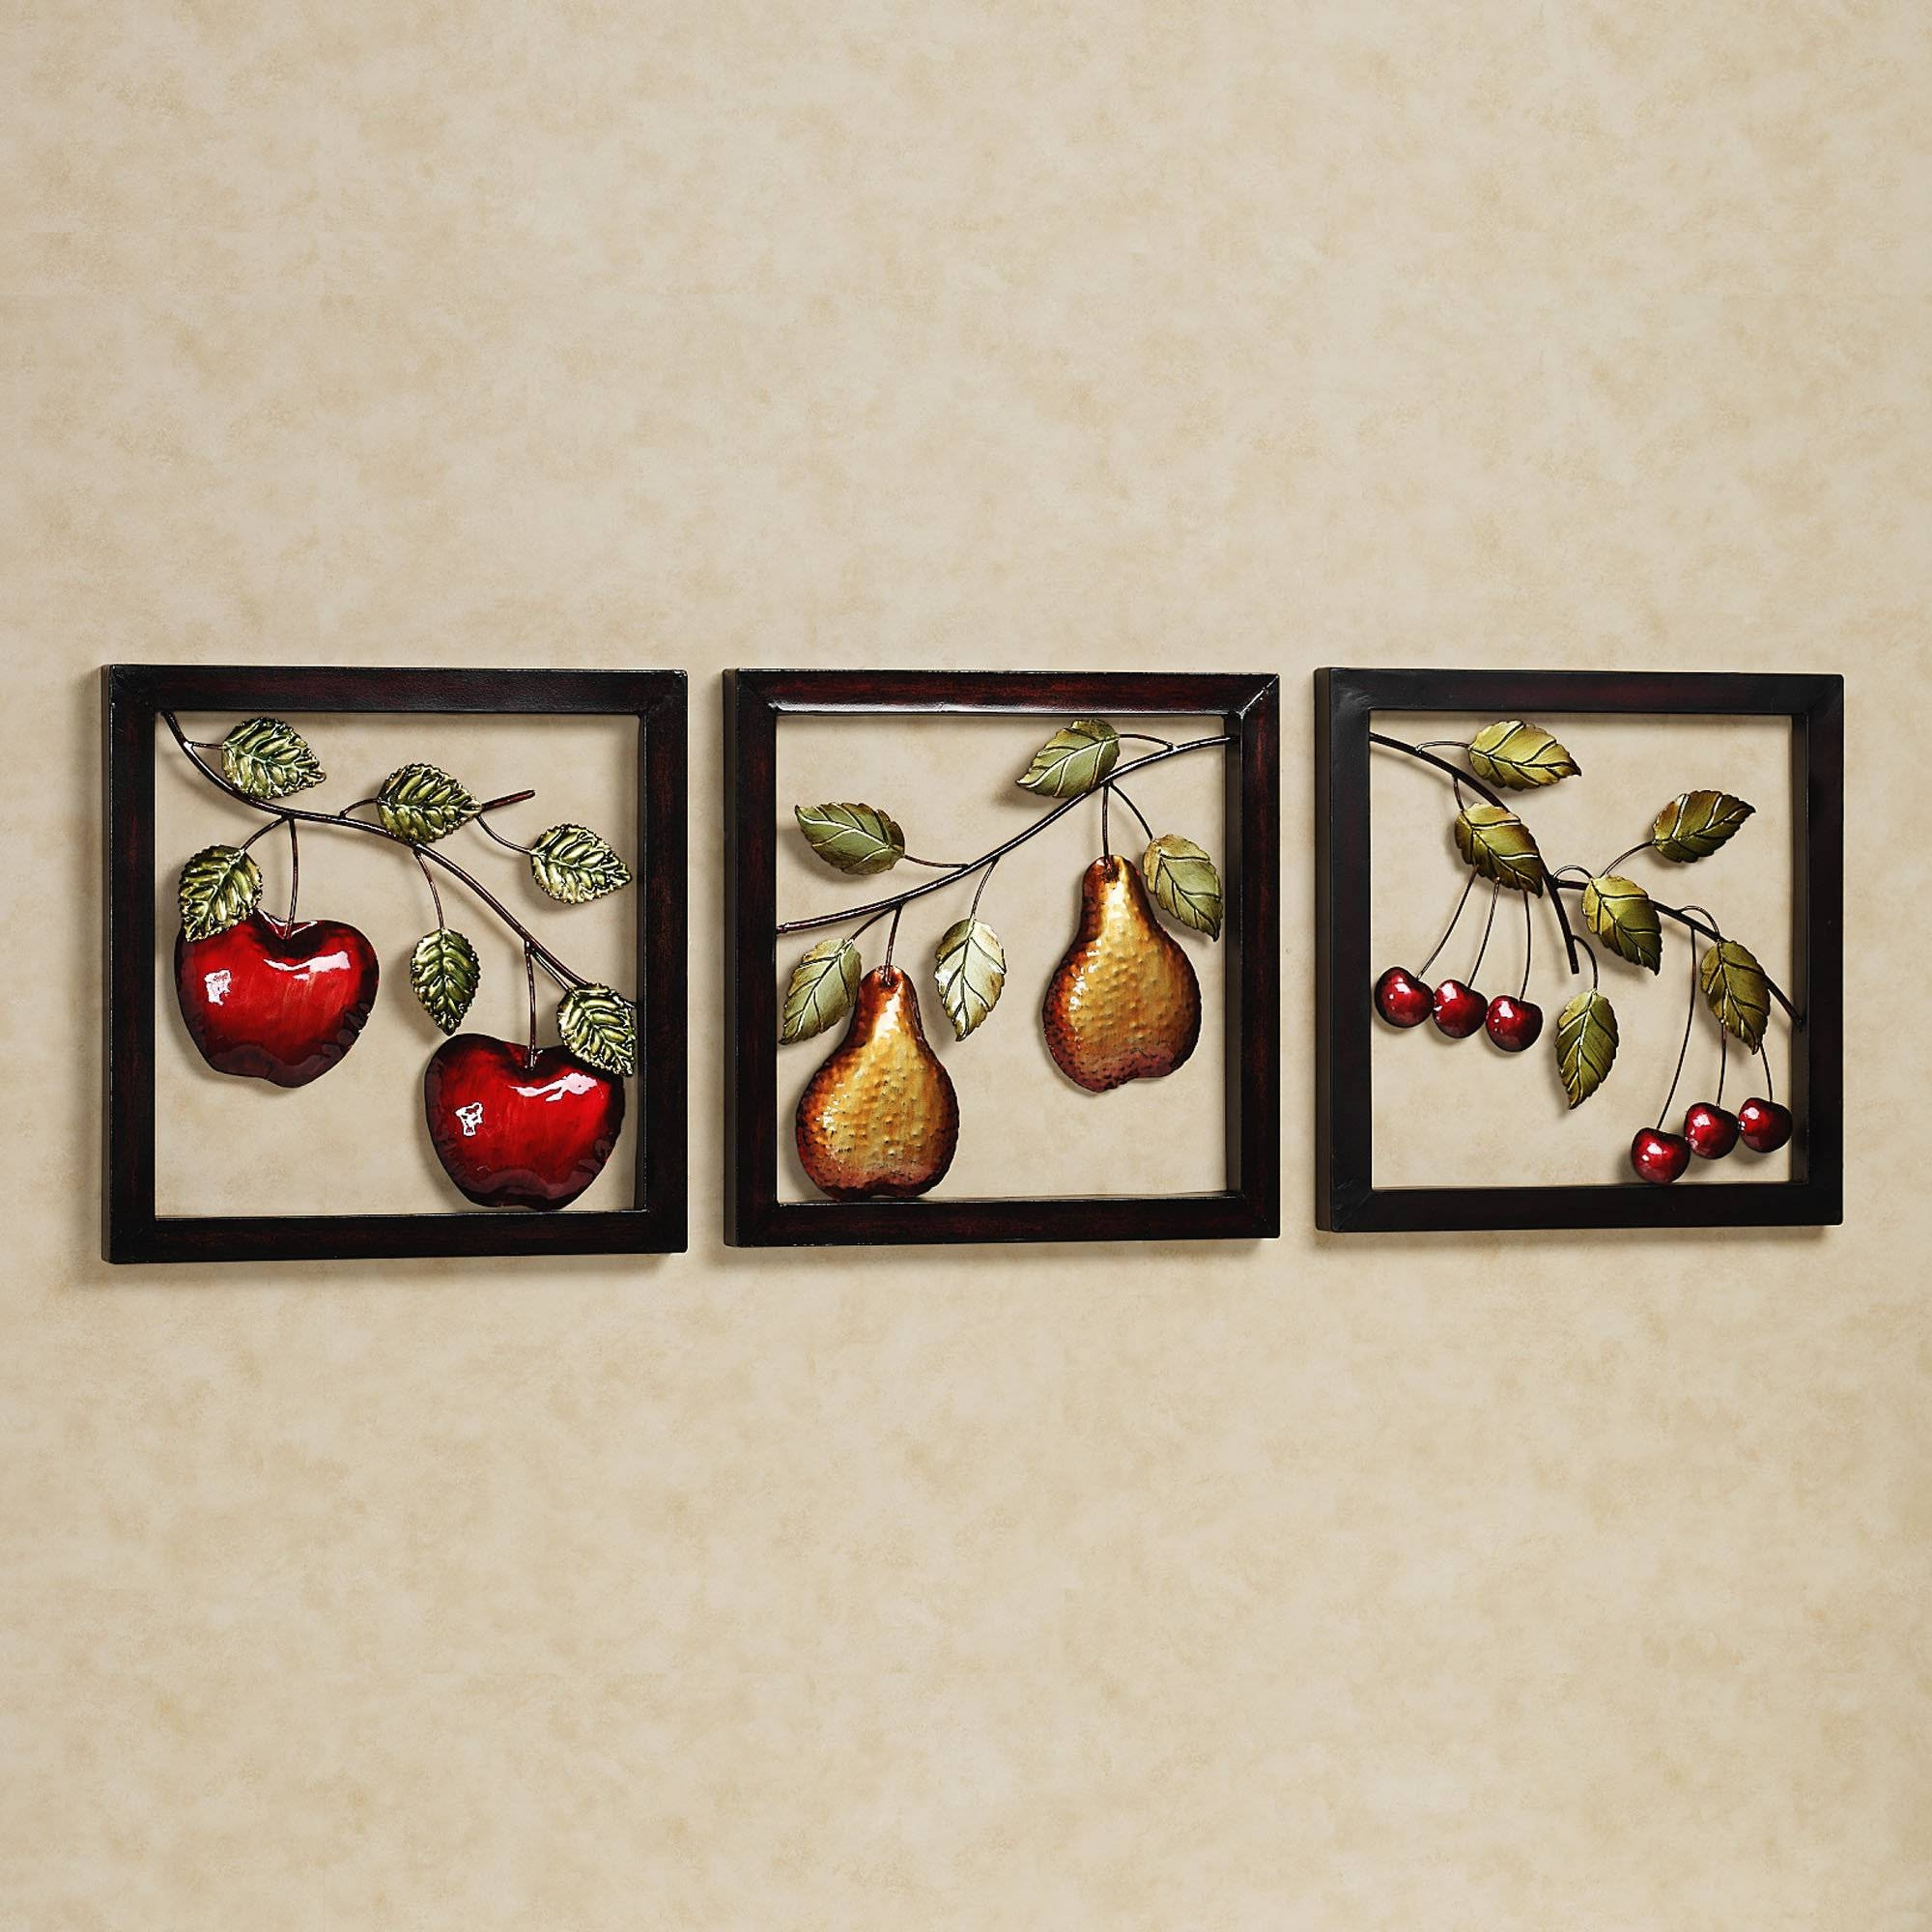 Beautiful Fruits Metal Wall Art Decor Kitchen With Black Frame In Recent Metal Wall Art For Kitchen (View 2 of 20)